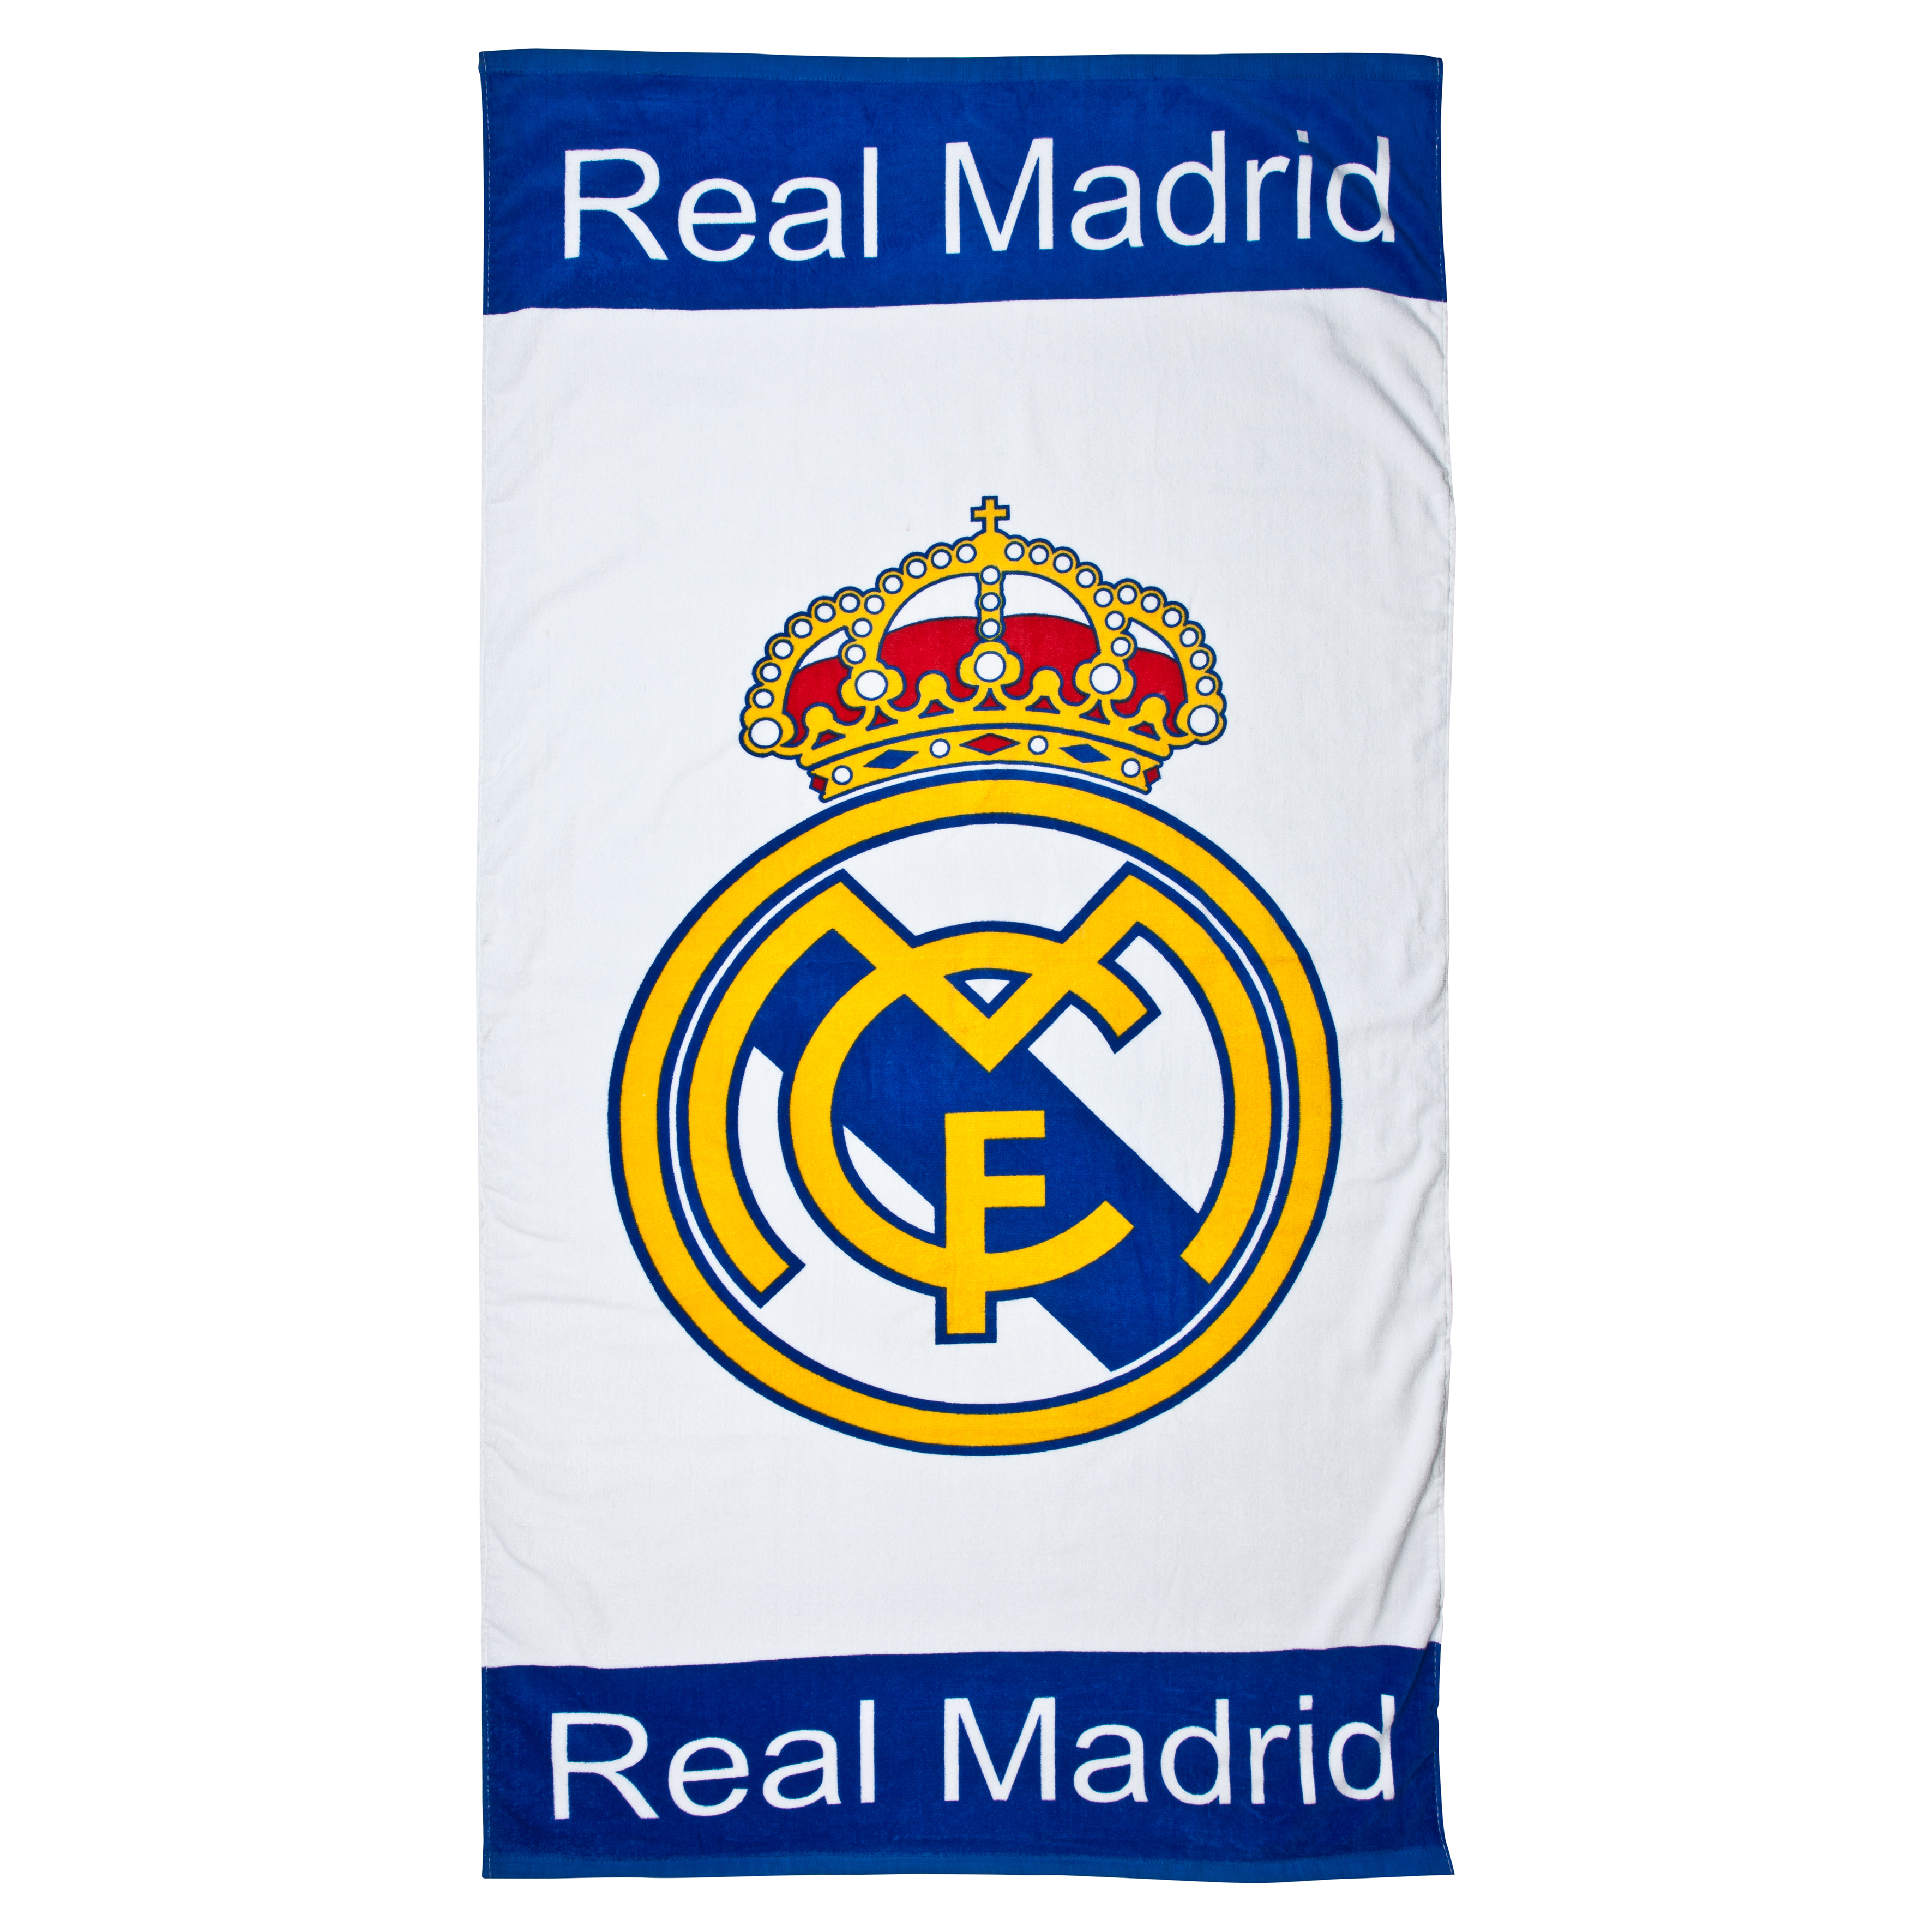 Toalla escudo Real Madrid - Blanco - 75 cm x 150 cm